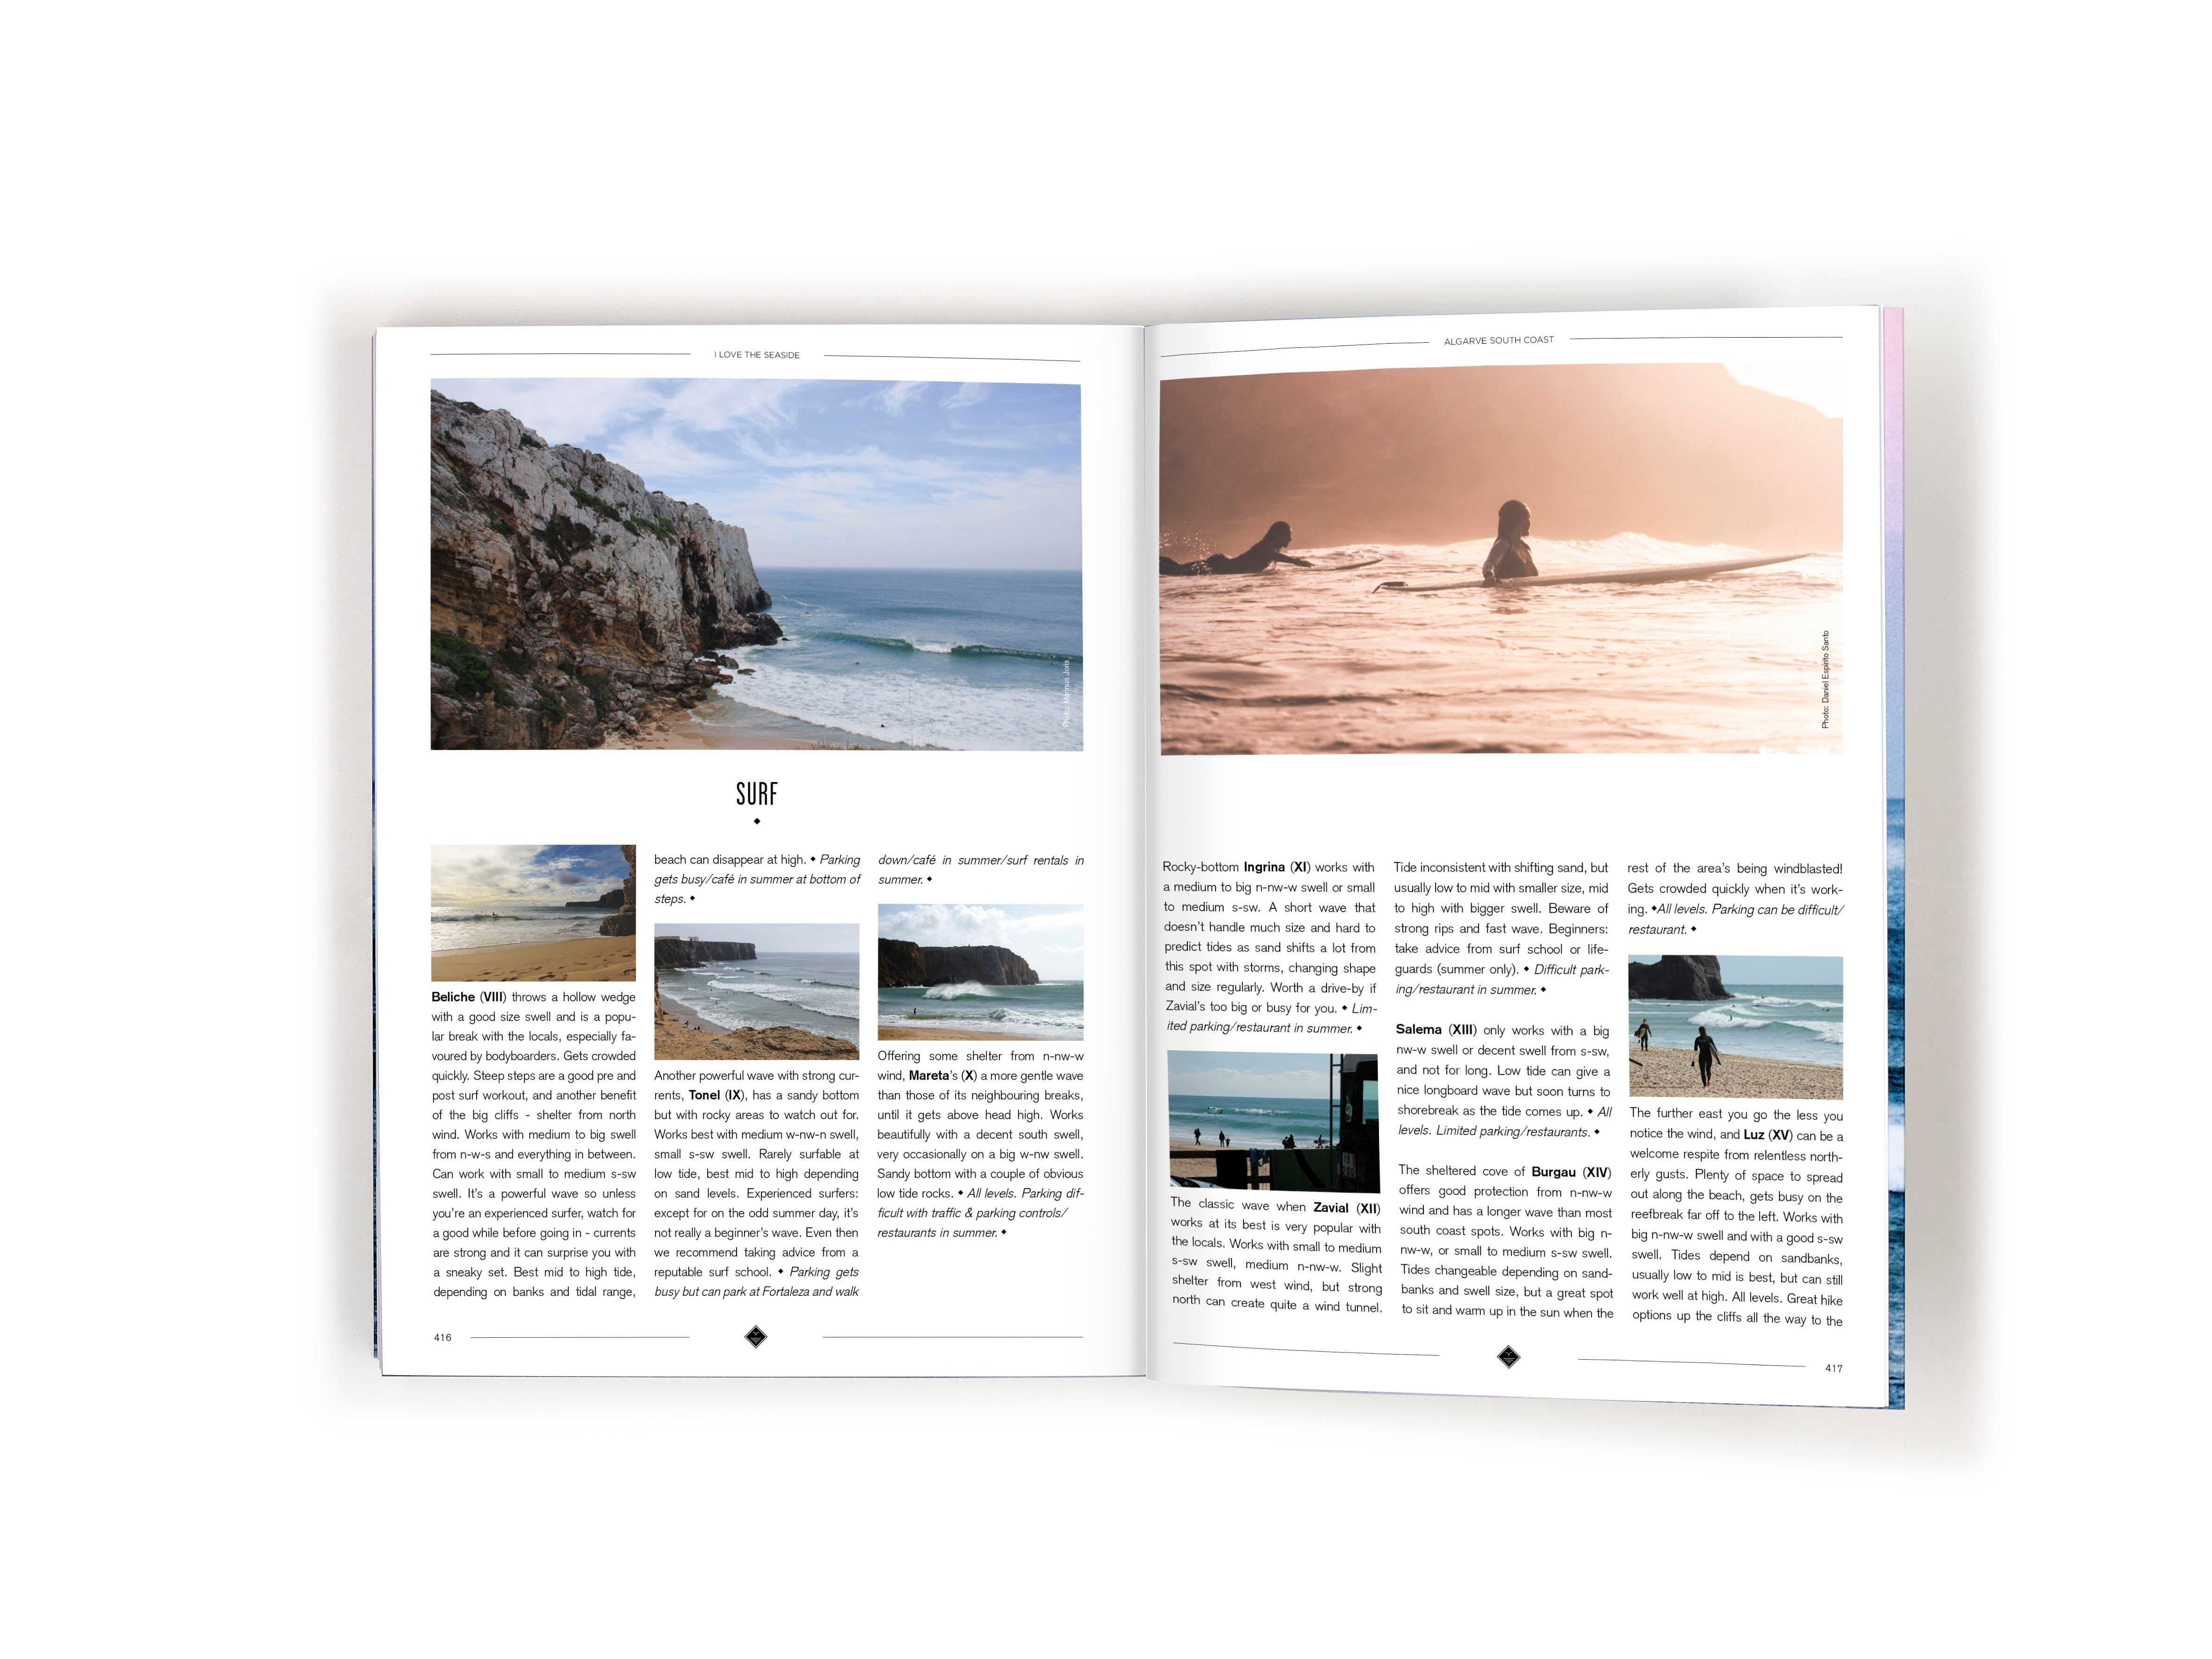 ILTS Surf & Travel Guide to Southwest Europe